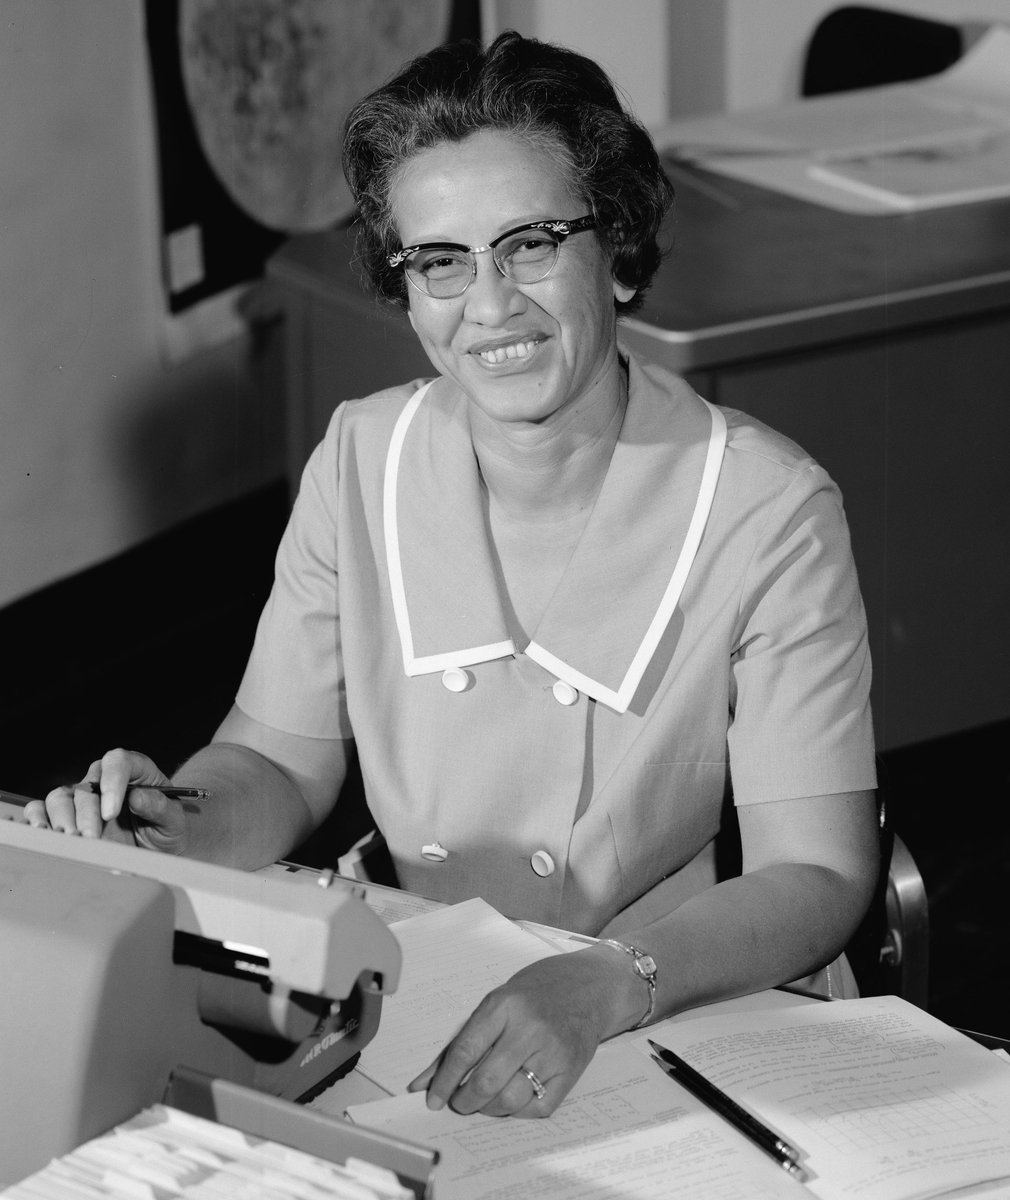 Join us in wishing a happy 100th birthday to Katherine Johnson! 'Hidden figure' no more, we celebrate her legacy and all the 'modern figures' working across @NASA today. https://t.co/QLpZ1ROOV3  #Happy100Katherine